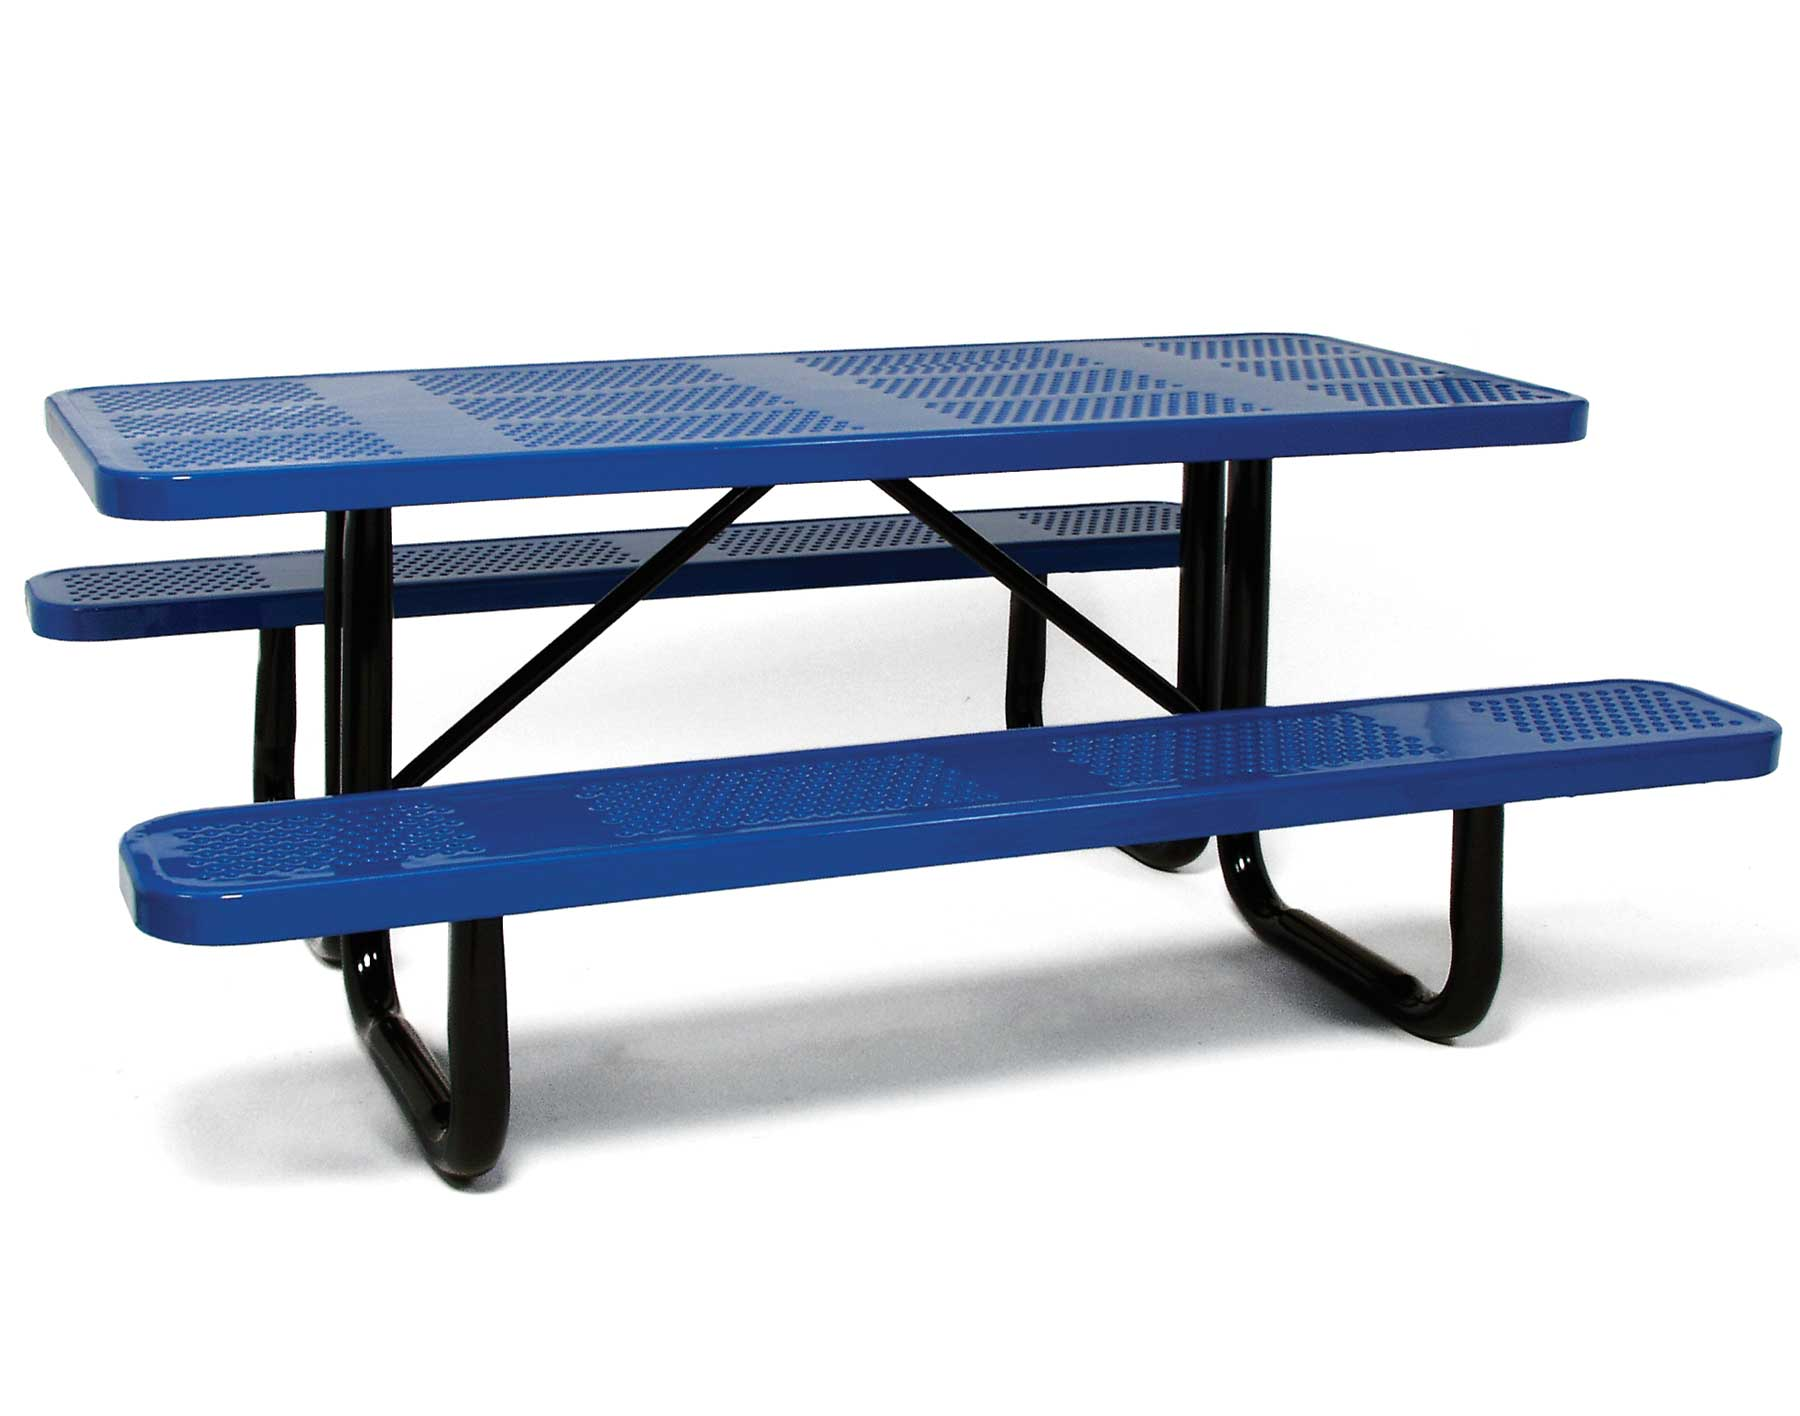 Picnic Sets For 6 6' Portable Picnic Table Shown